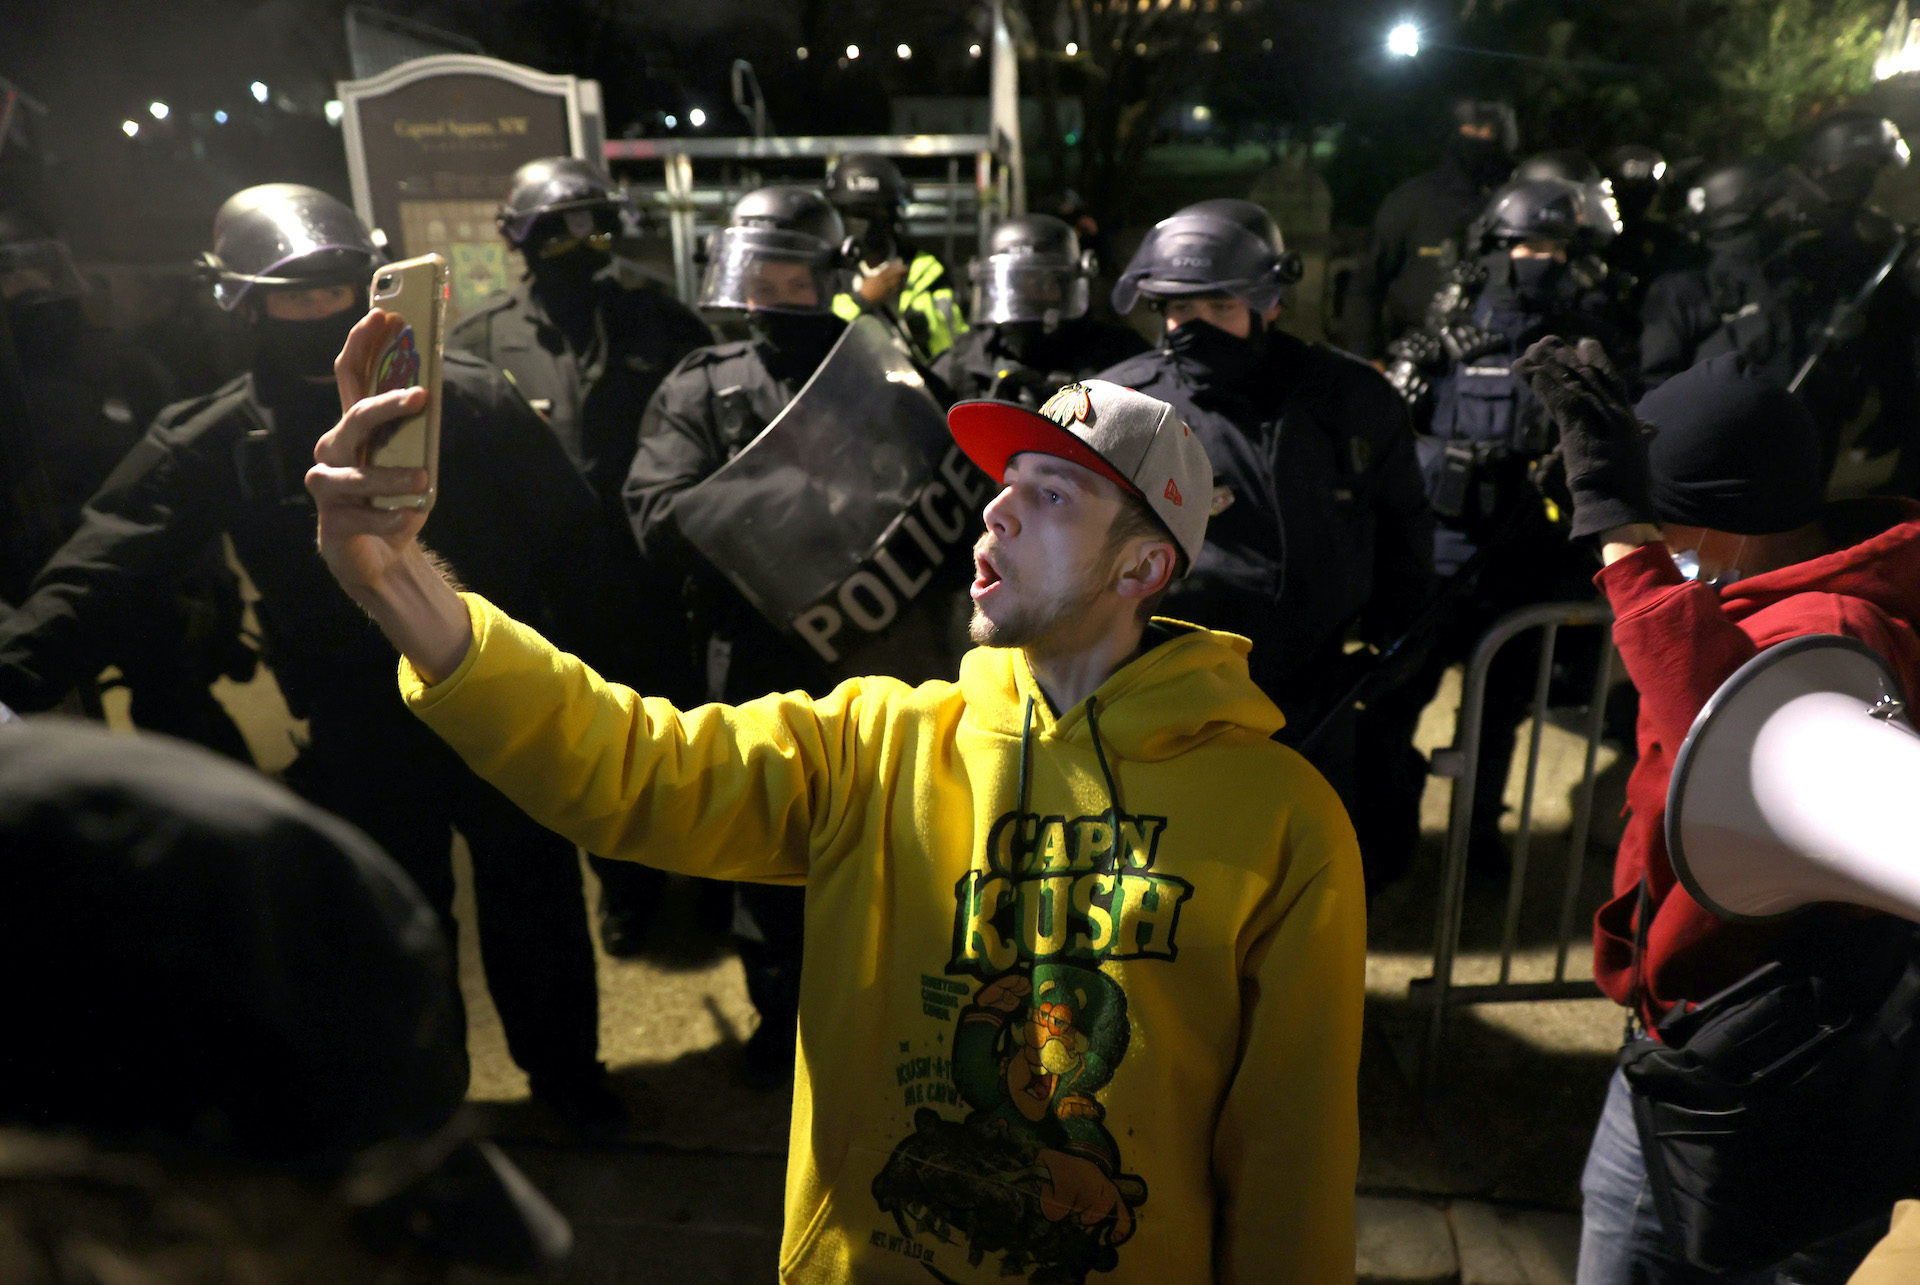 A protester takes a photo with police officers in riot gear dispersing protesters gathering at the U.S. Capitol Building. (Tasos Katopodis/Getty Images)